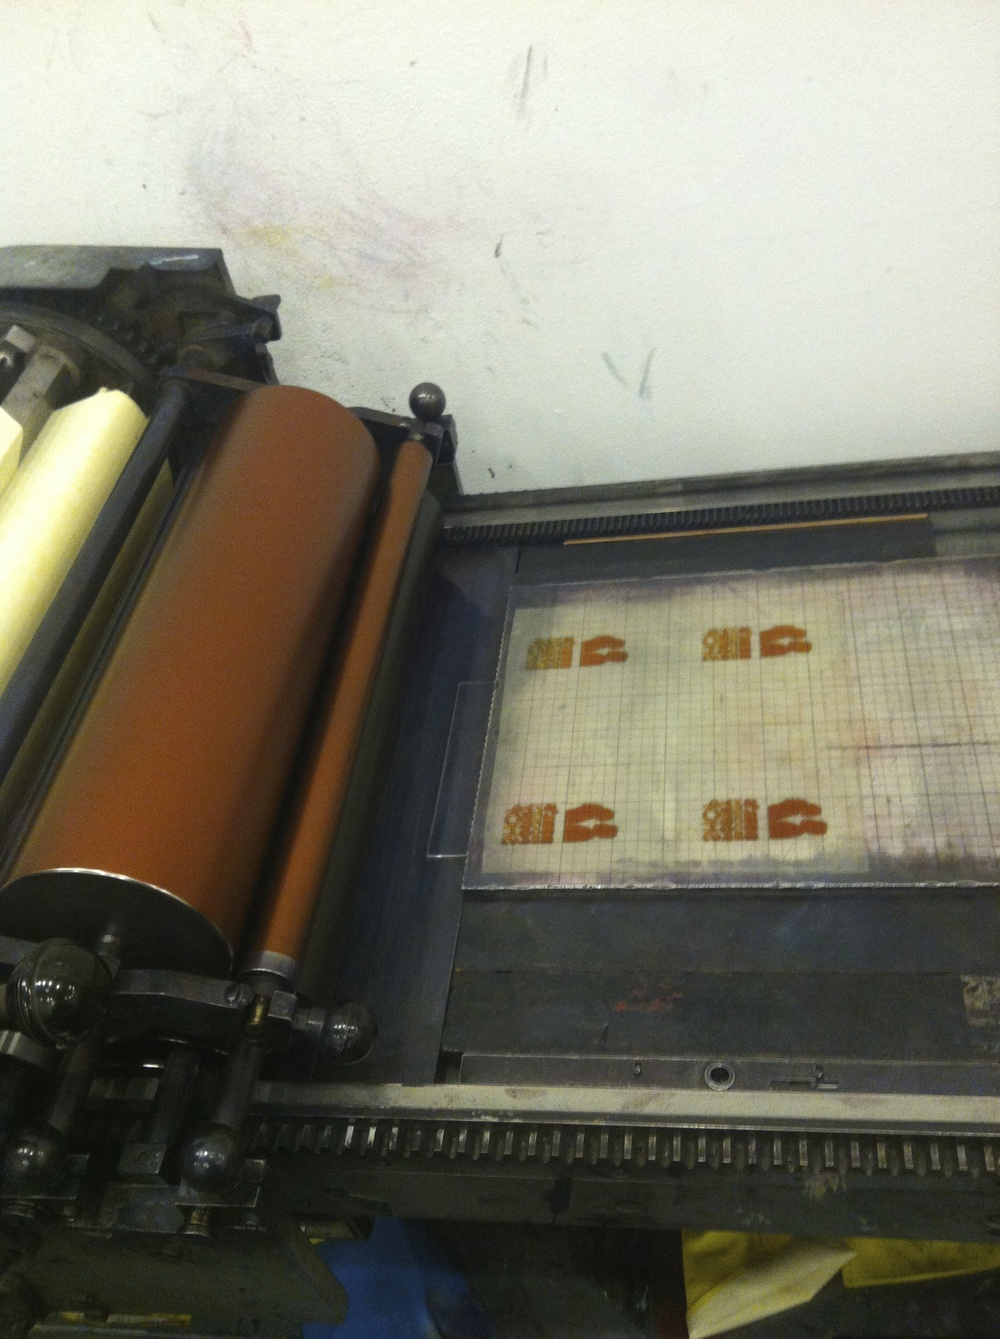 Printing our letterpresses business card booklet on a Vandercook press at the Arm cooperative studio in Williamsburg